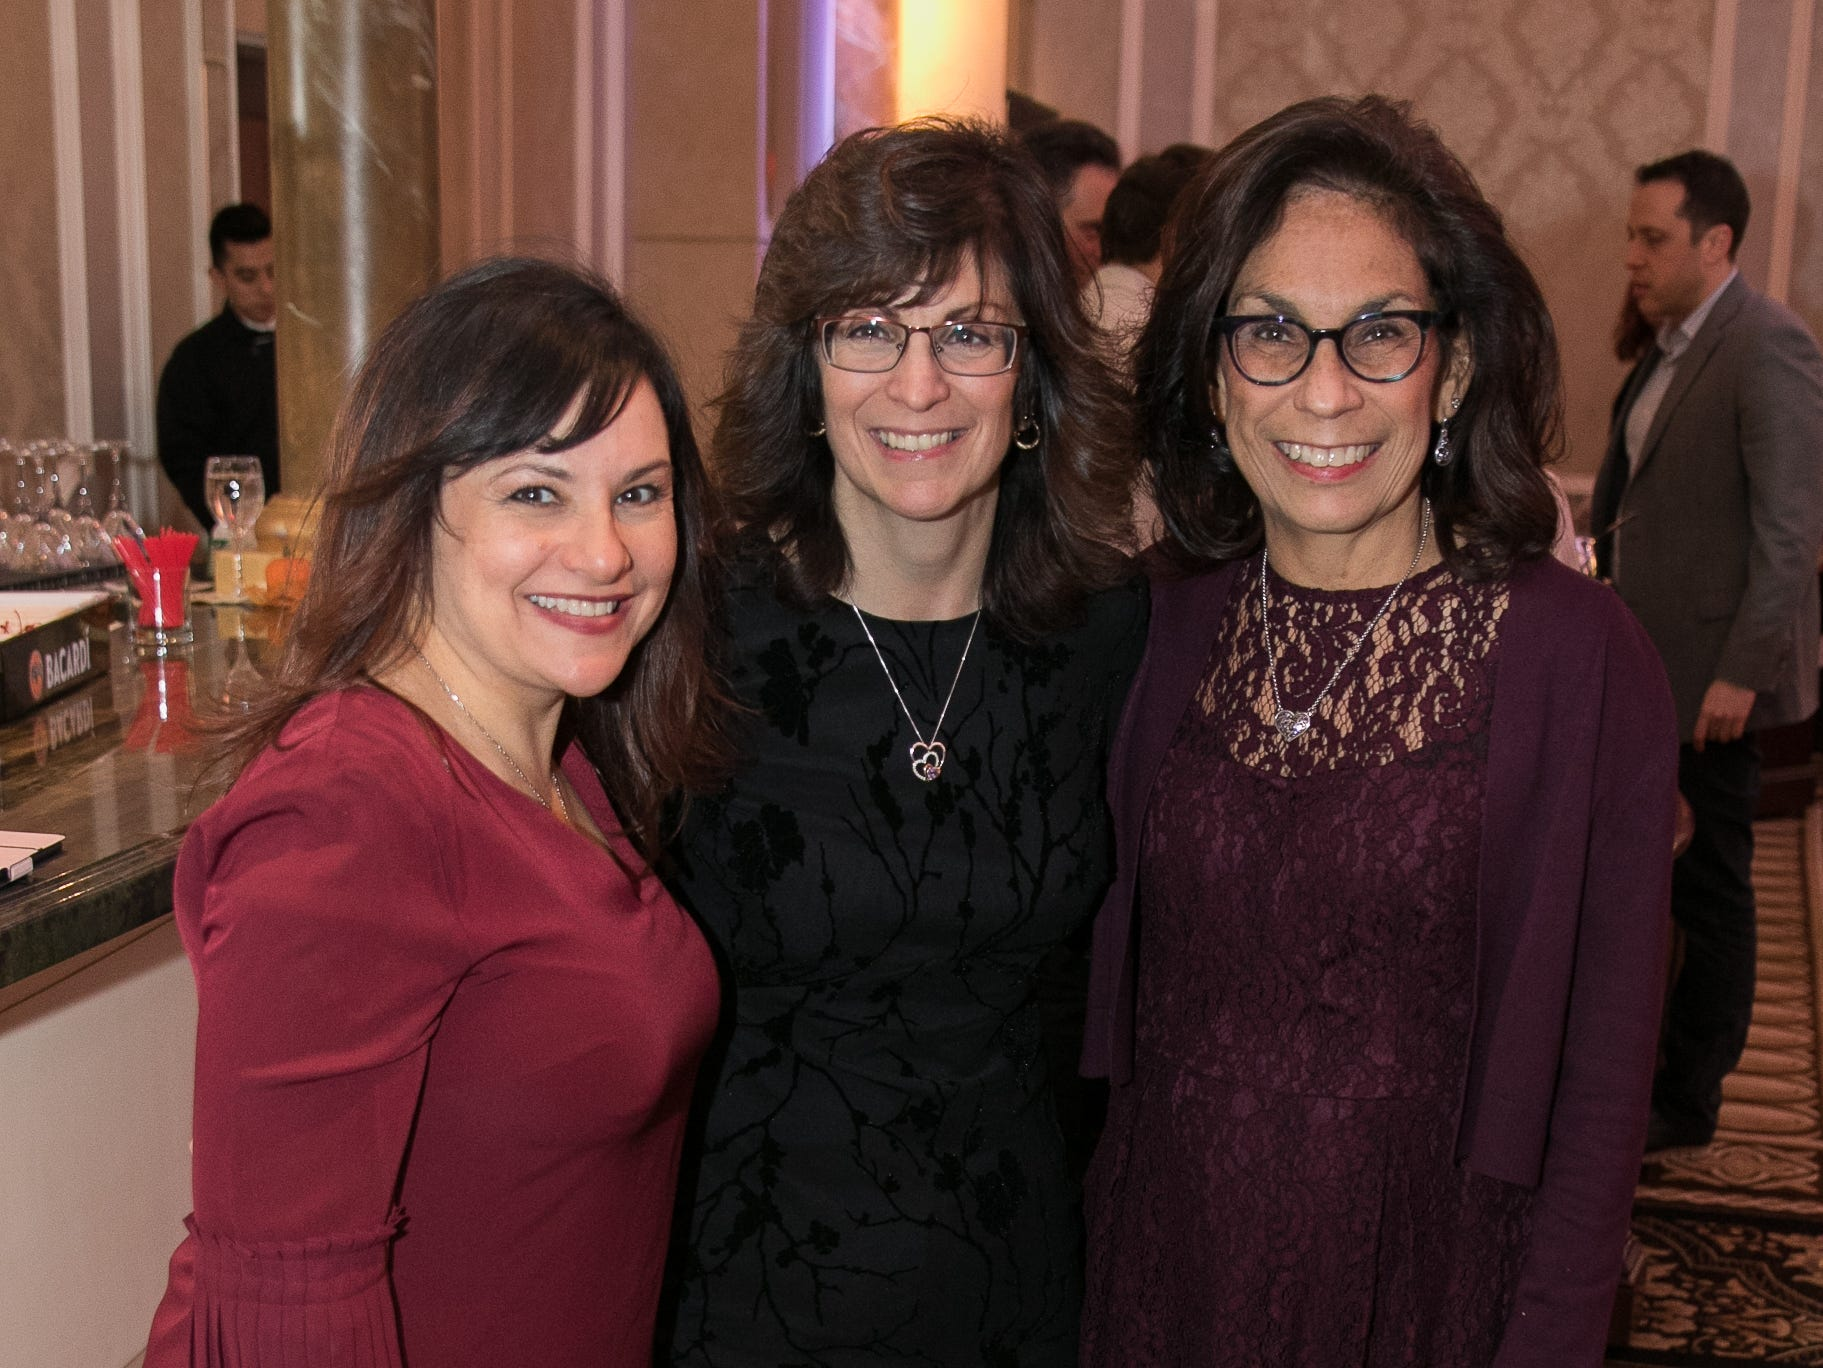 """Rosemary Klie, Donna Lee Corrieri, CEO- Debbie Visconi. The New Bridge Medical Center Foundation held its 10th Annual """"A Taste of Bergen"""" at The Venetian in Garfield. The evening featured celebrity chef Chris Holland, the 2017 Grand Champion of the Food Network's """"Chopped."""" 11/12/2018"""